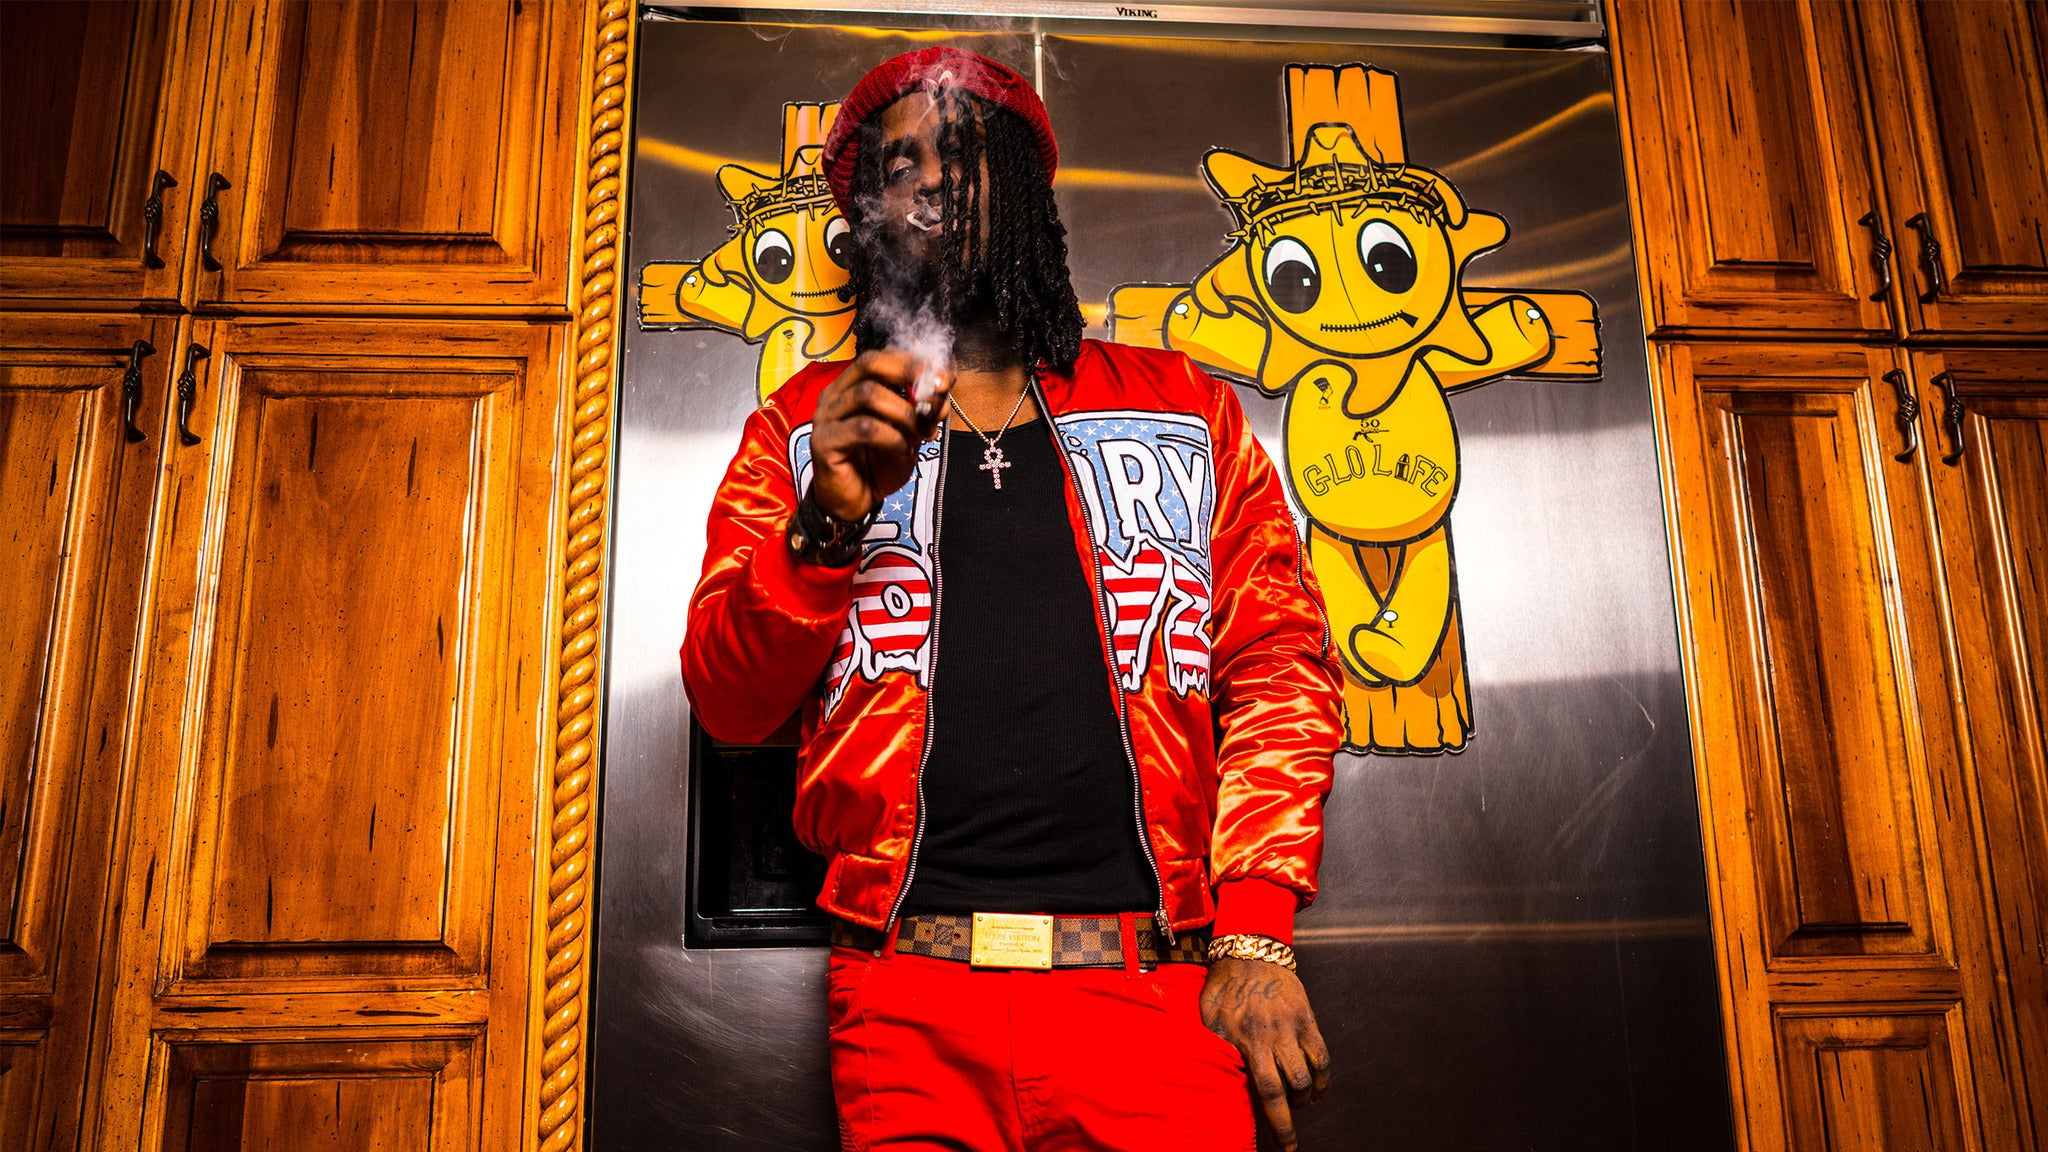 Chief Keef at Senator Theater